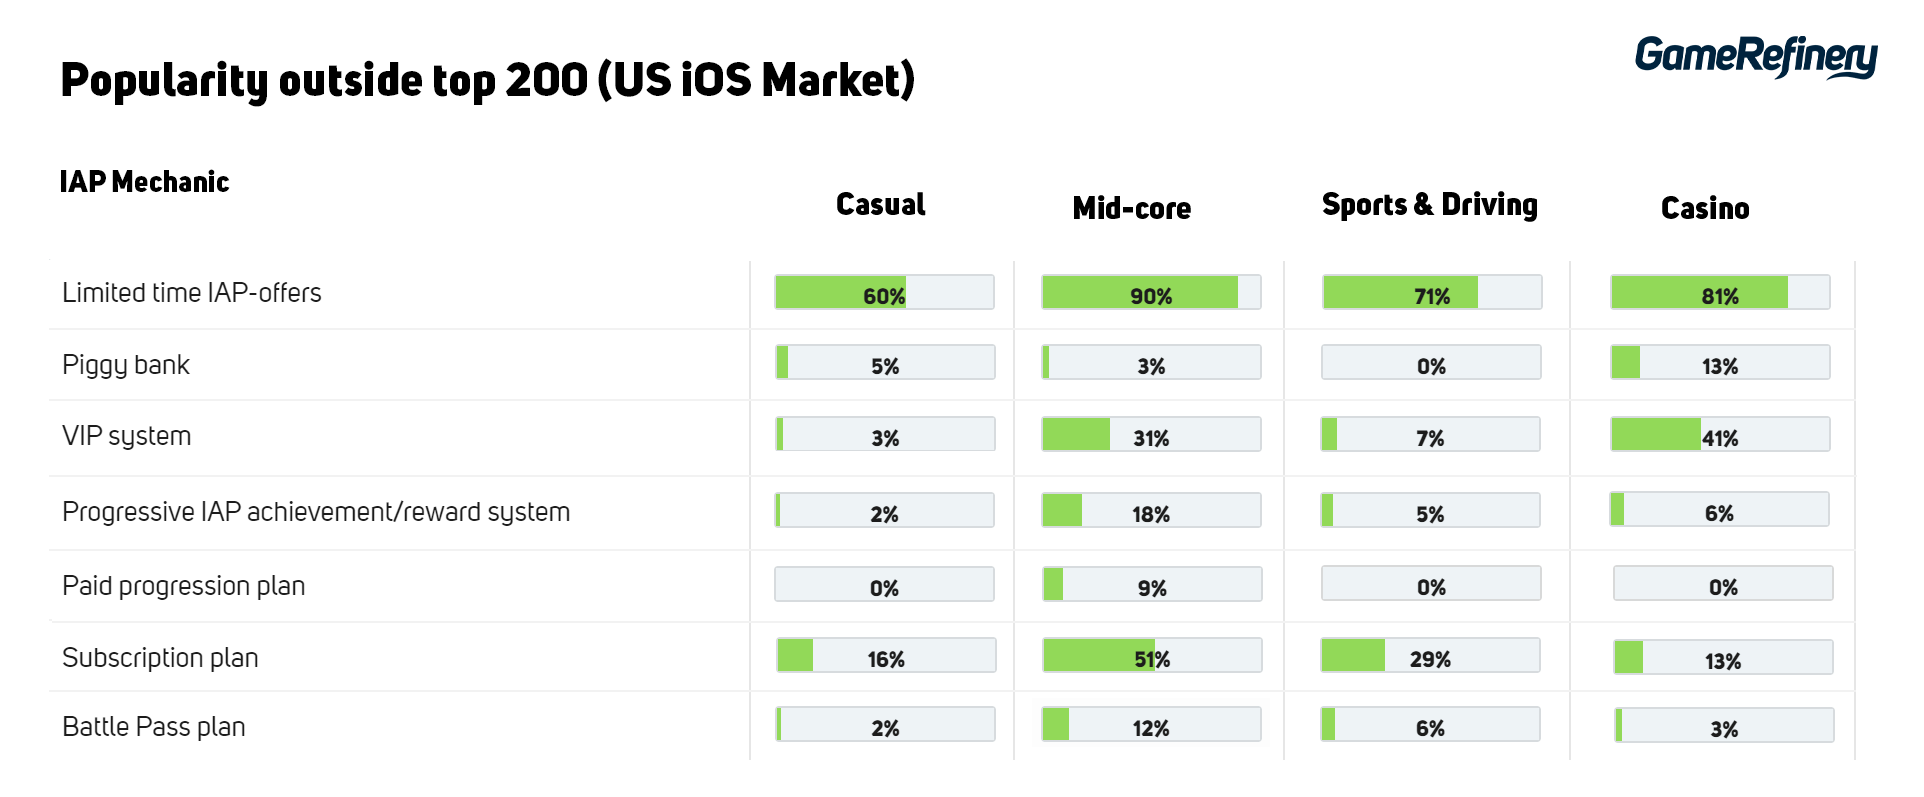 IAP Mechanics popularity in outside top 200 mobile games US iOS Market